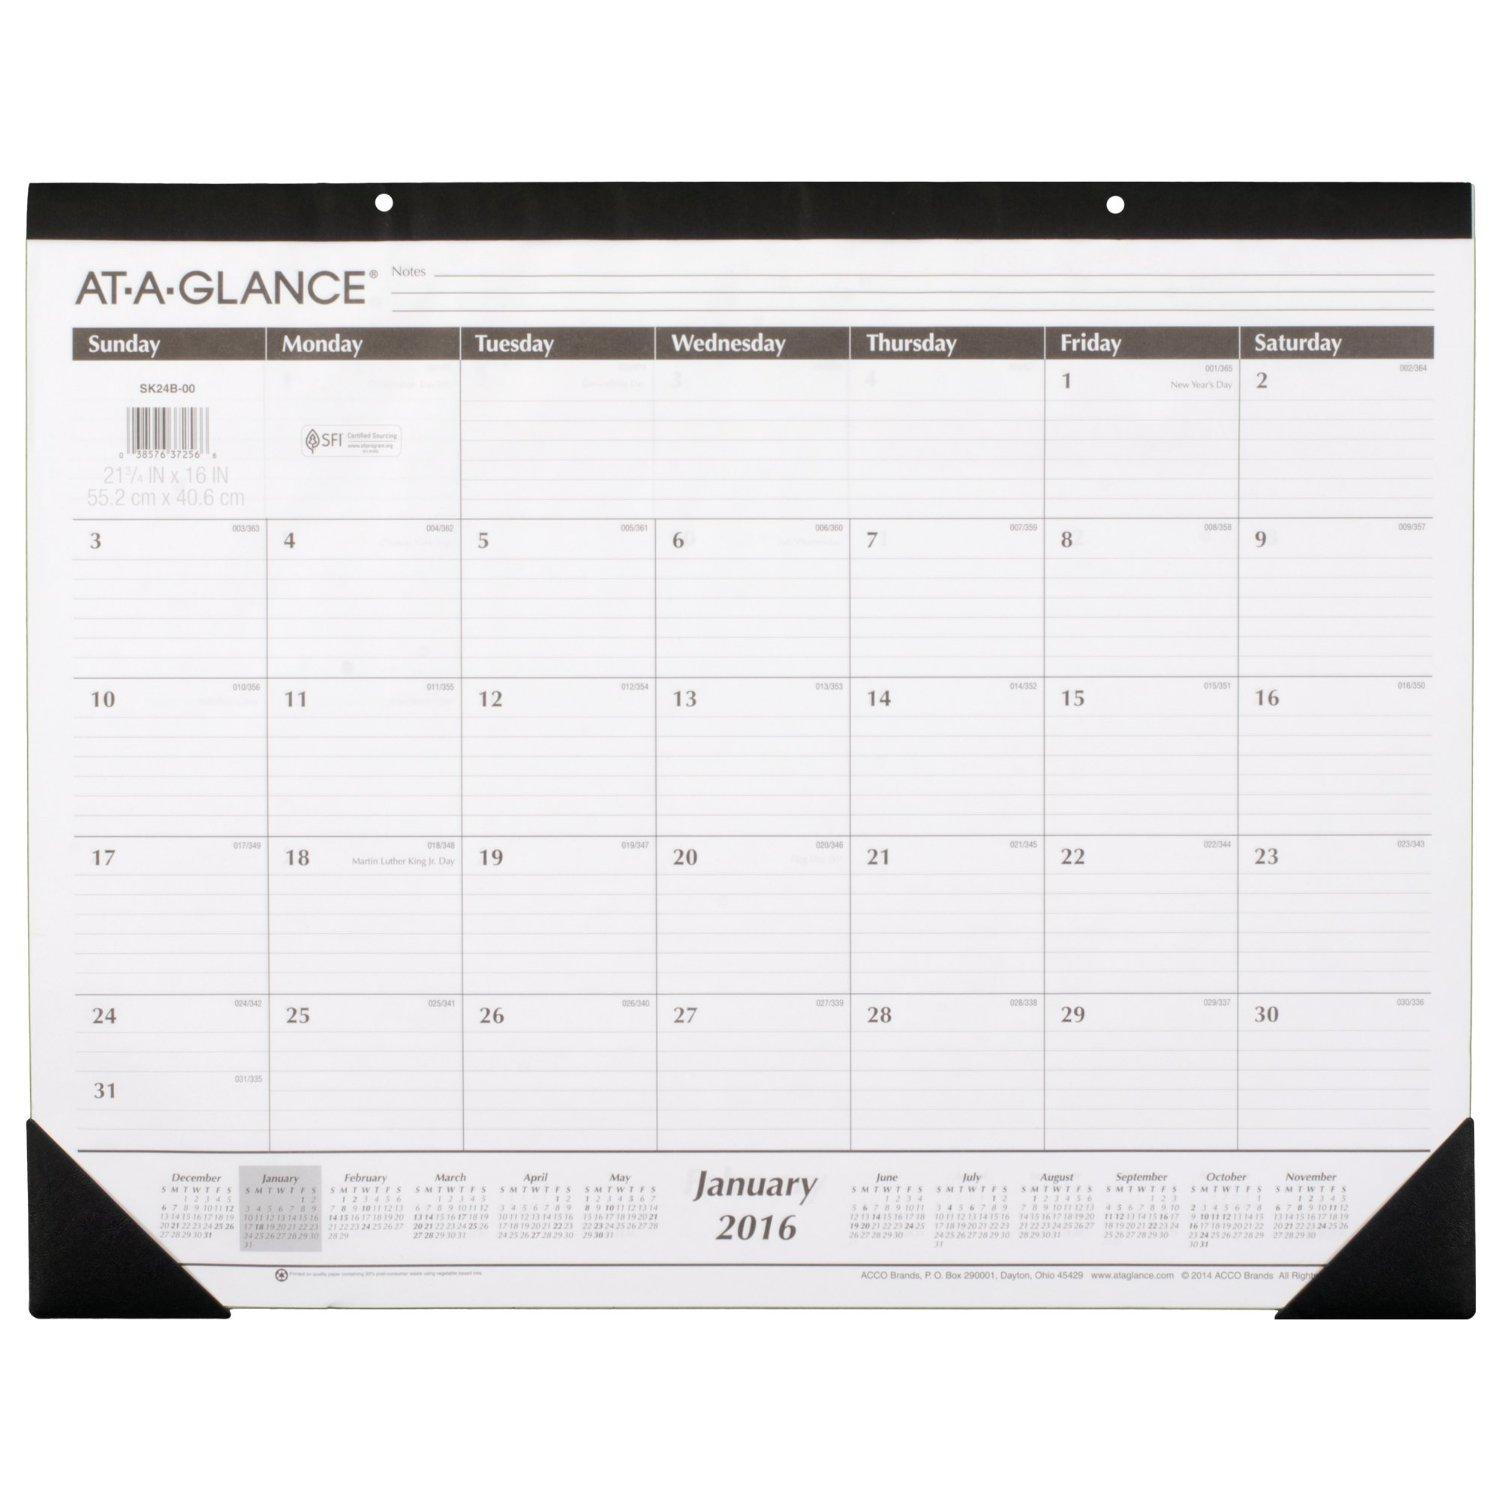 Weekly Calendar Desk Pad : Amazon at a glance monthly desk pad calendar